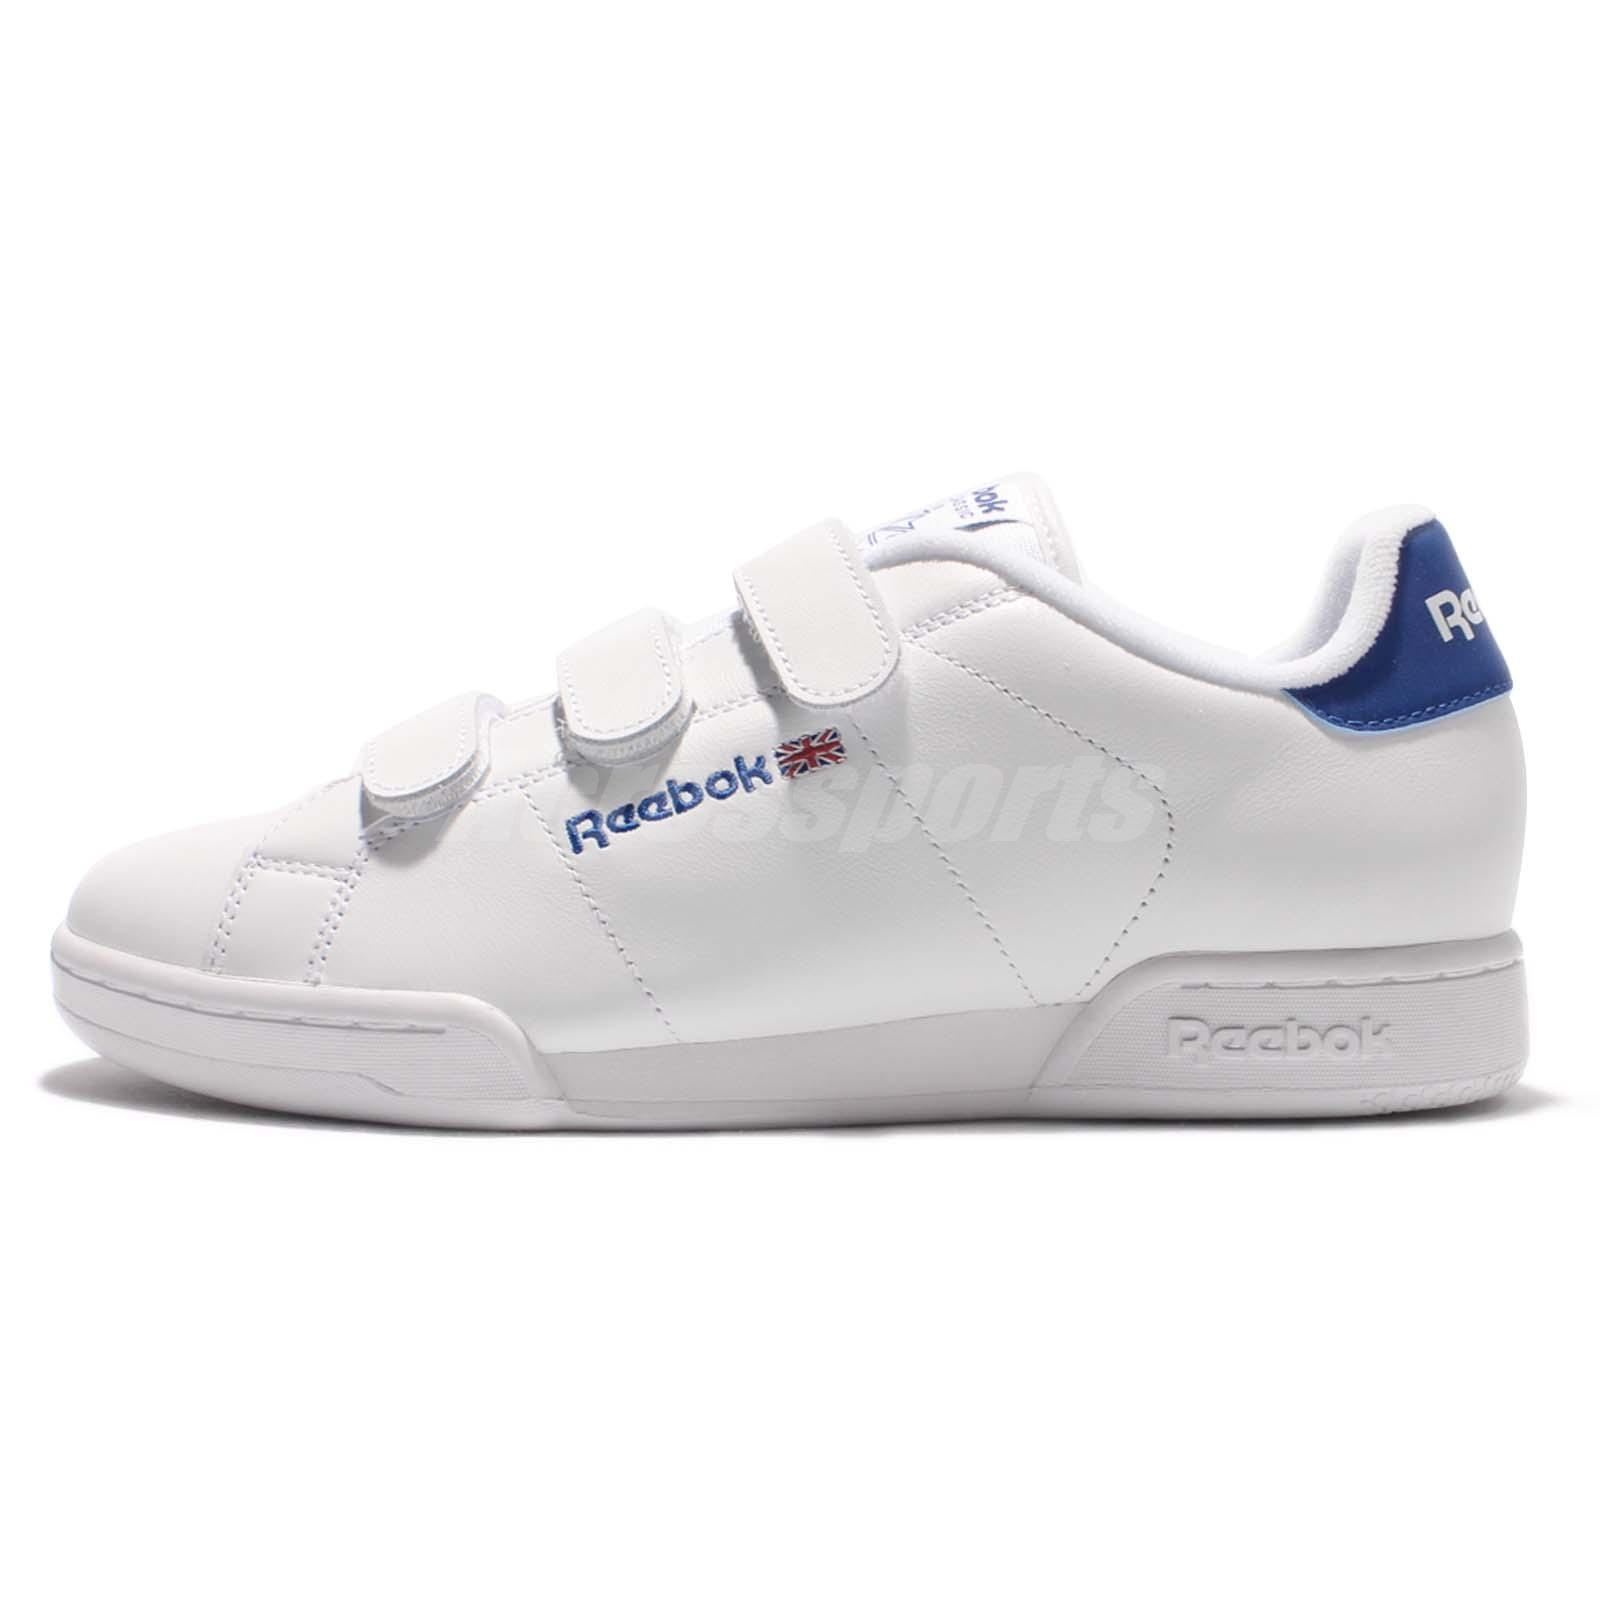 reebok npc straps white blue leather men court classic shoes sneakers ar1649 ebay. Black Bedroom Furniture Sets. Home Design Ideas